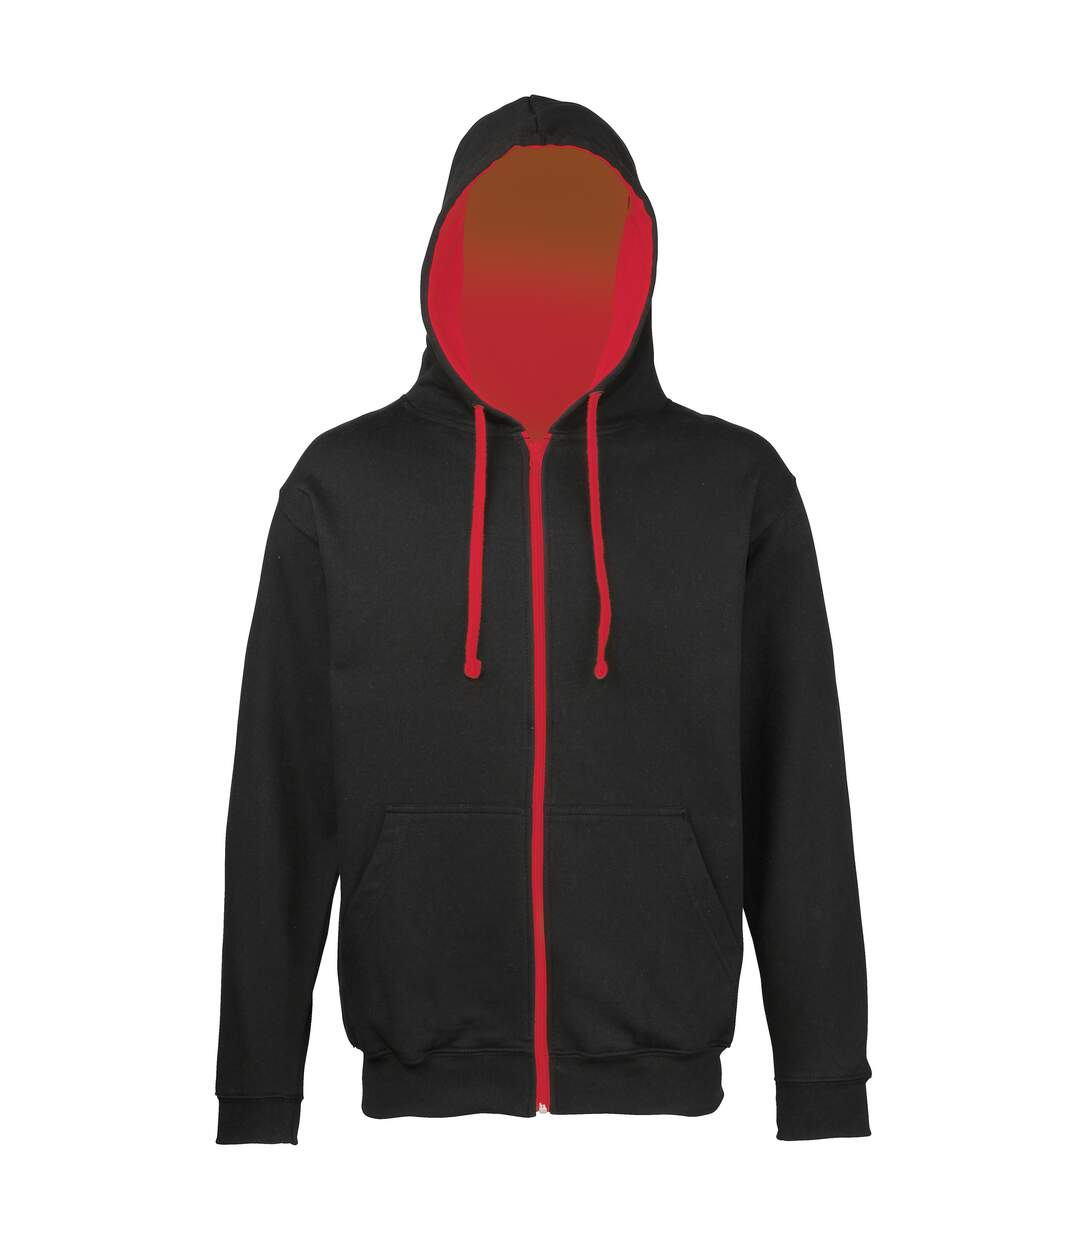 Awdis Mens Varsity Hooded Sweatshirt / Hoodie / Zoodie (Fire Red/Jet Black) - UTRW182